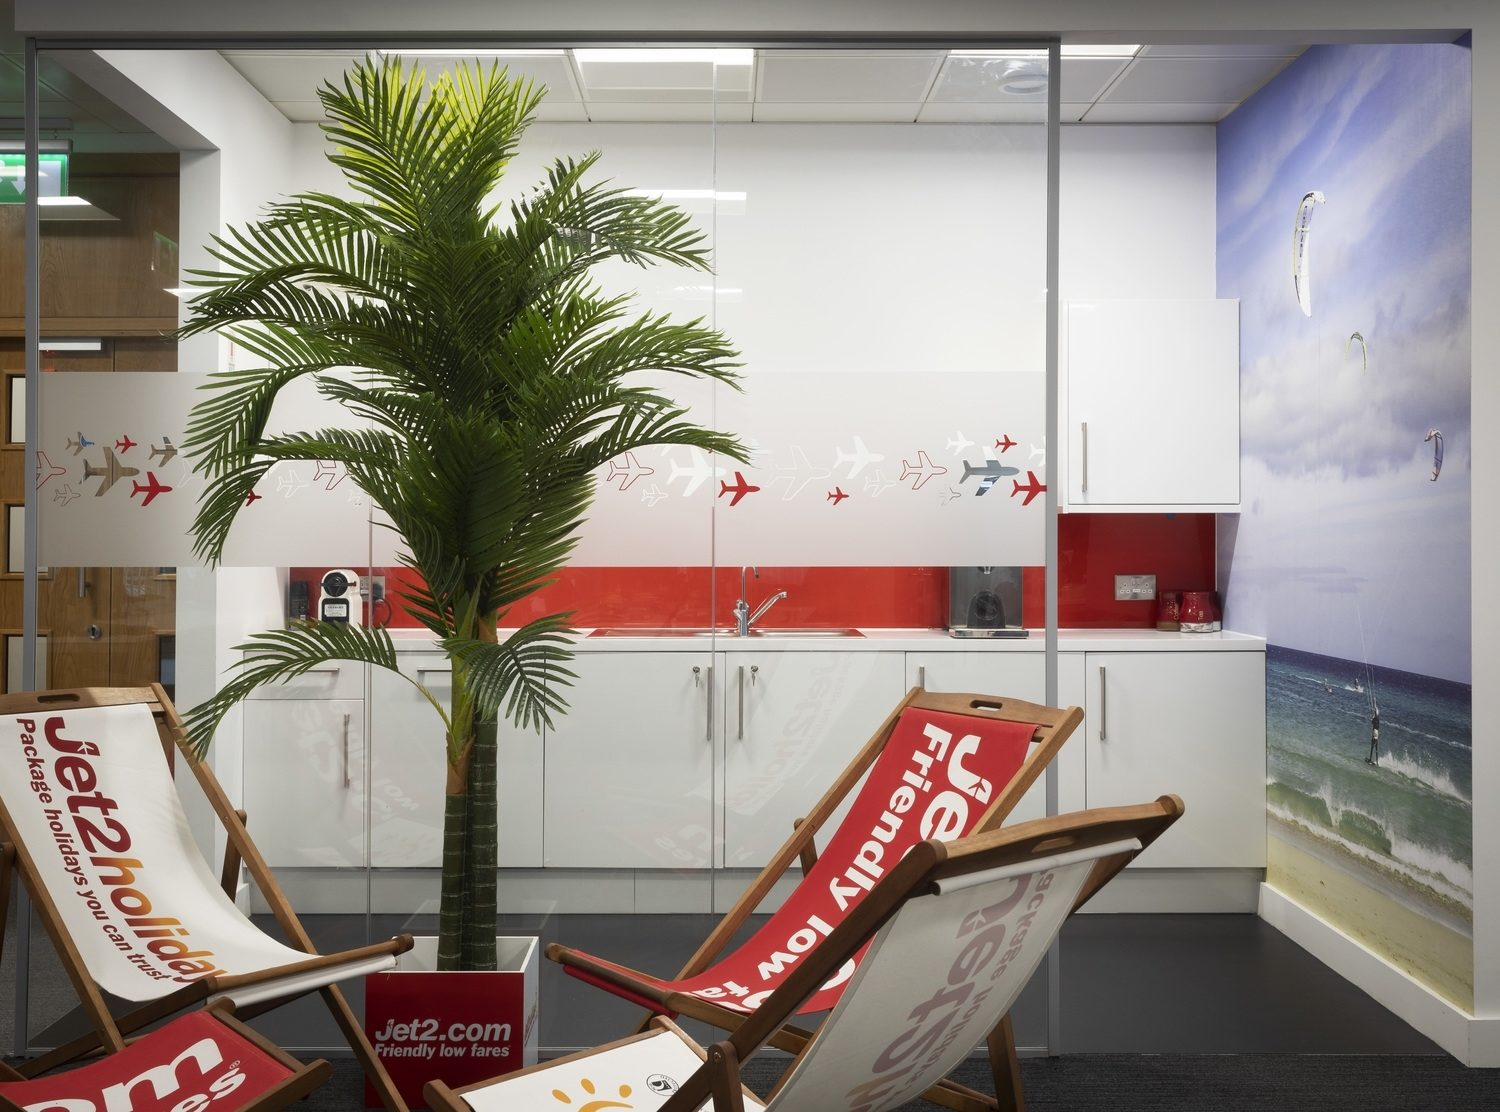 Jet2 office fit out with palm trees